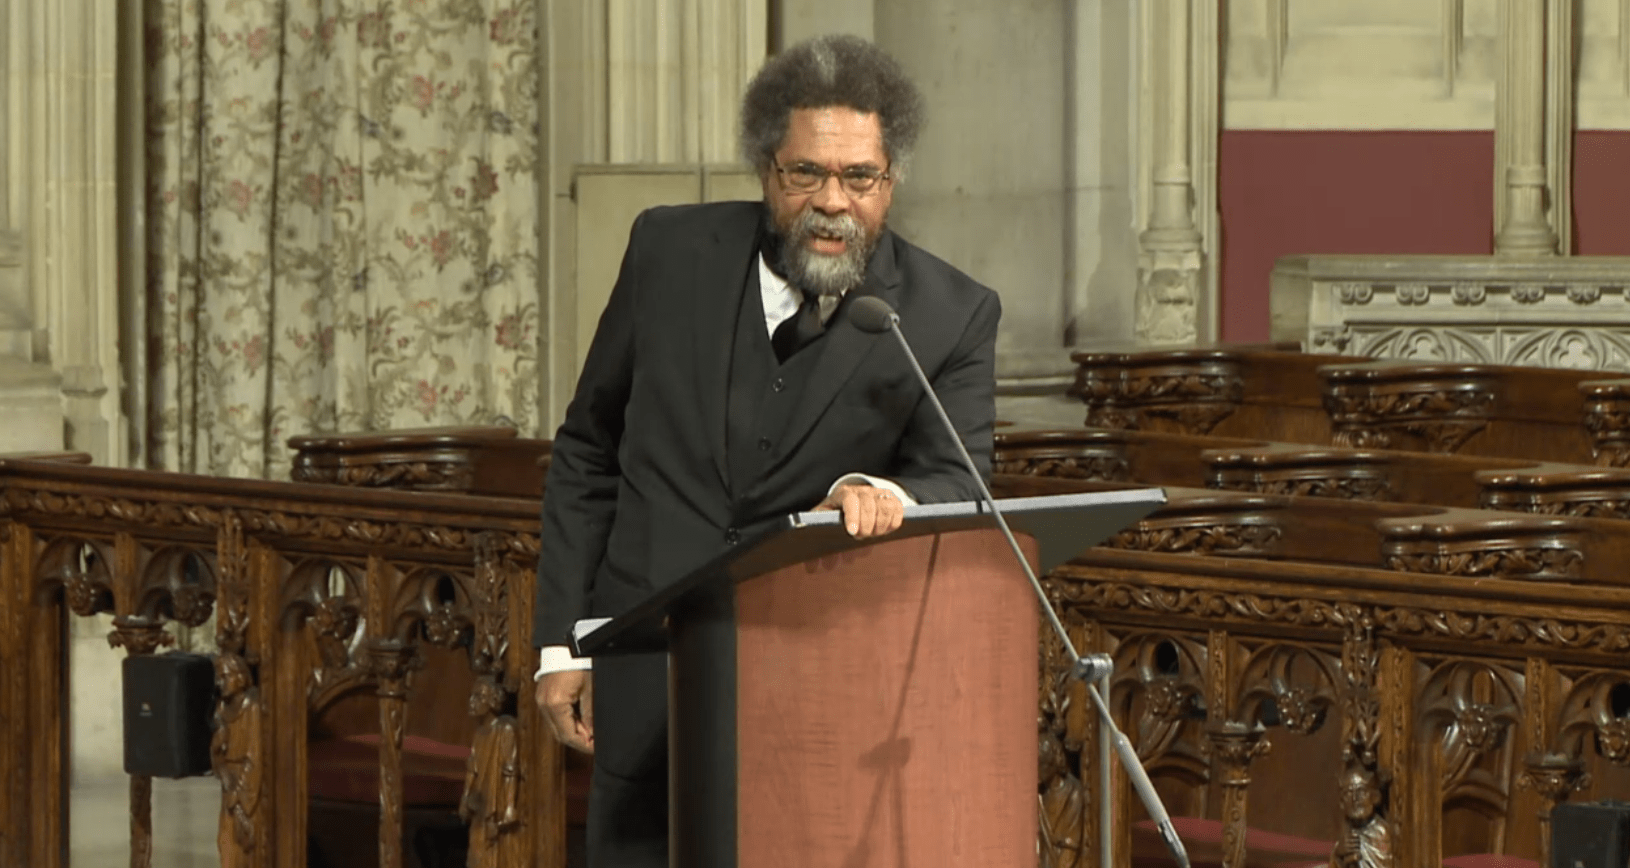 Dr. Cornel West speaking at Dr. James Cone's Memorial Service